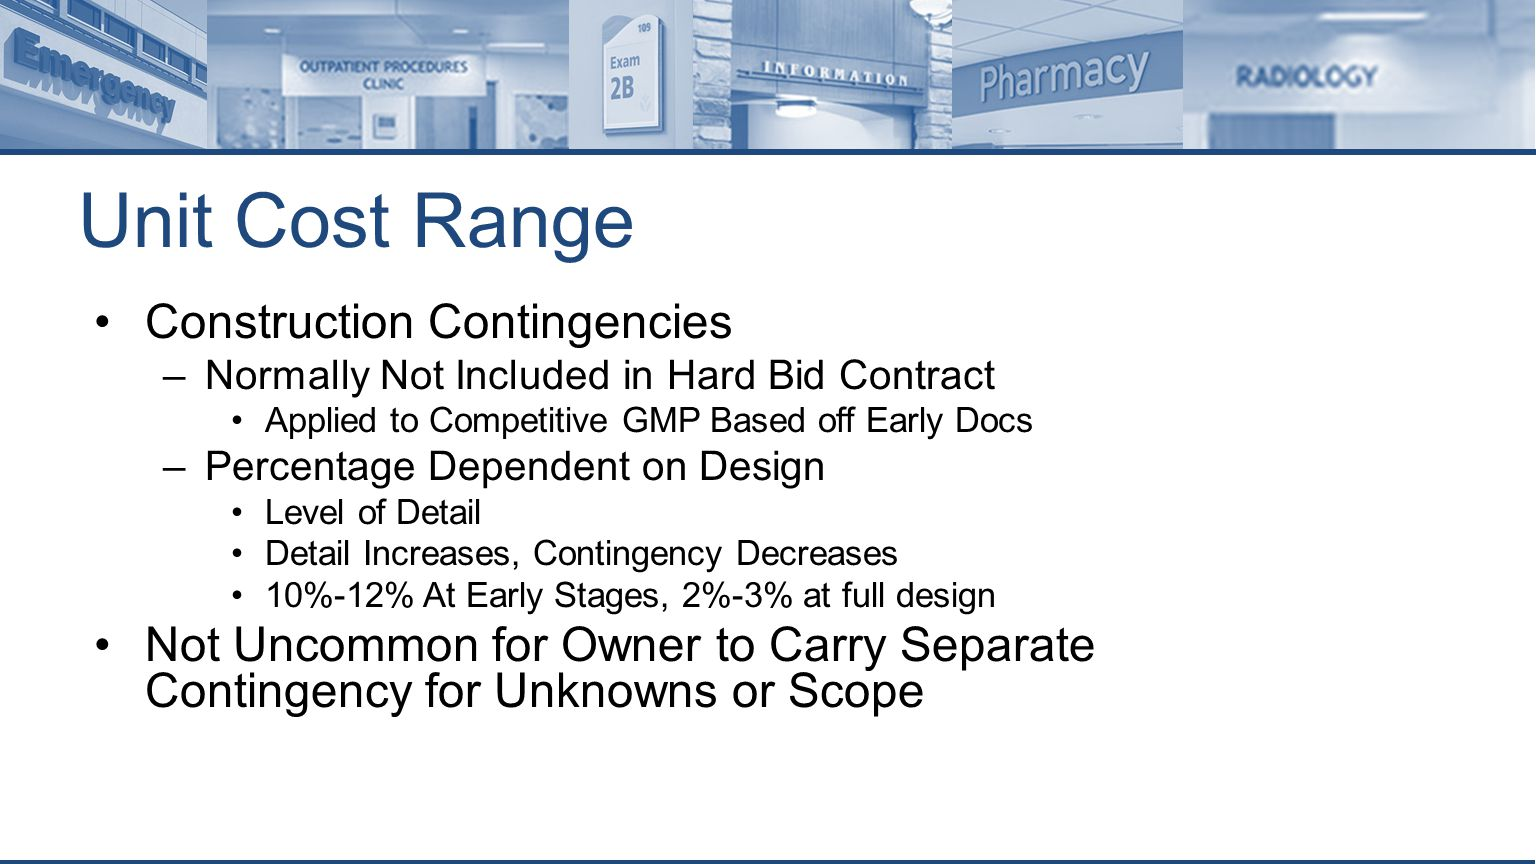 Unit Cost Range Construction Contingencies –Normally Not Included in Hard Bid Contract Applied to Competitive GMP Based off Early Docs –Percentage Dependent on Design Level of Detail Detail Increases, Contingency Decreases 10%-12% At Early Stages, 2%-3% at full design Not Uncommon for Owner to Carry Separate Contingency for Unknowns or Scope